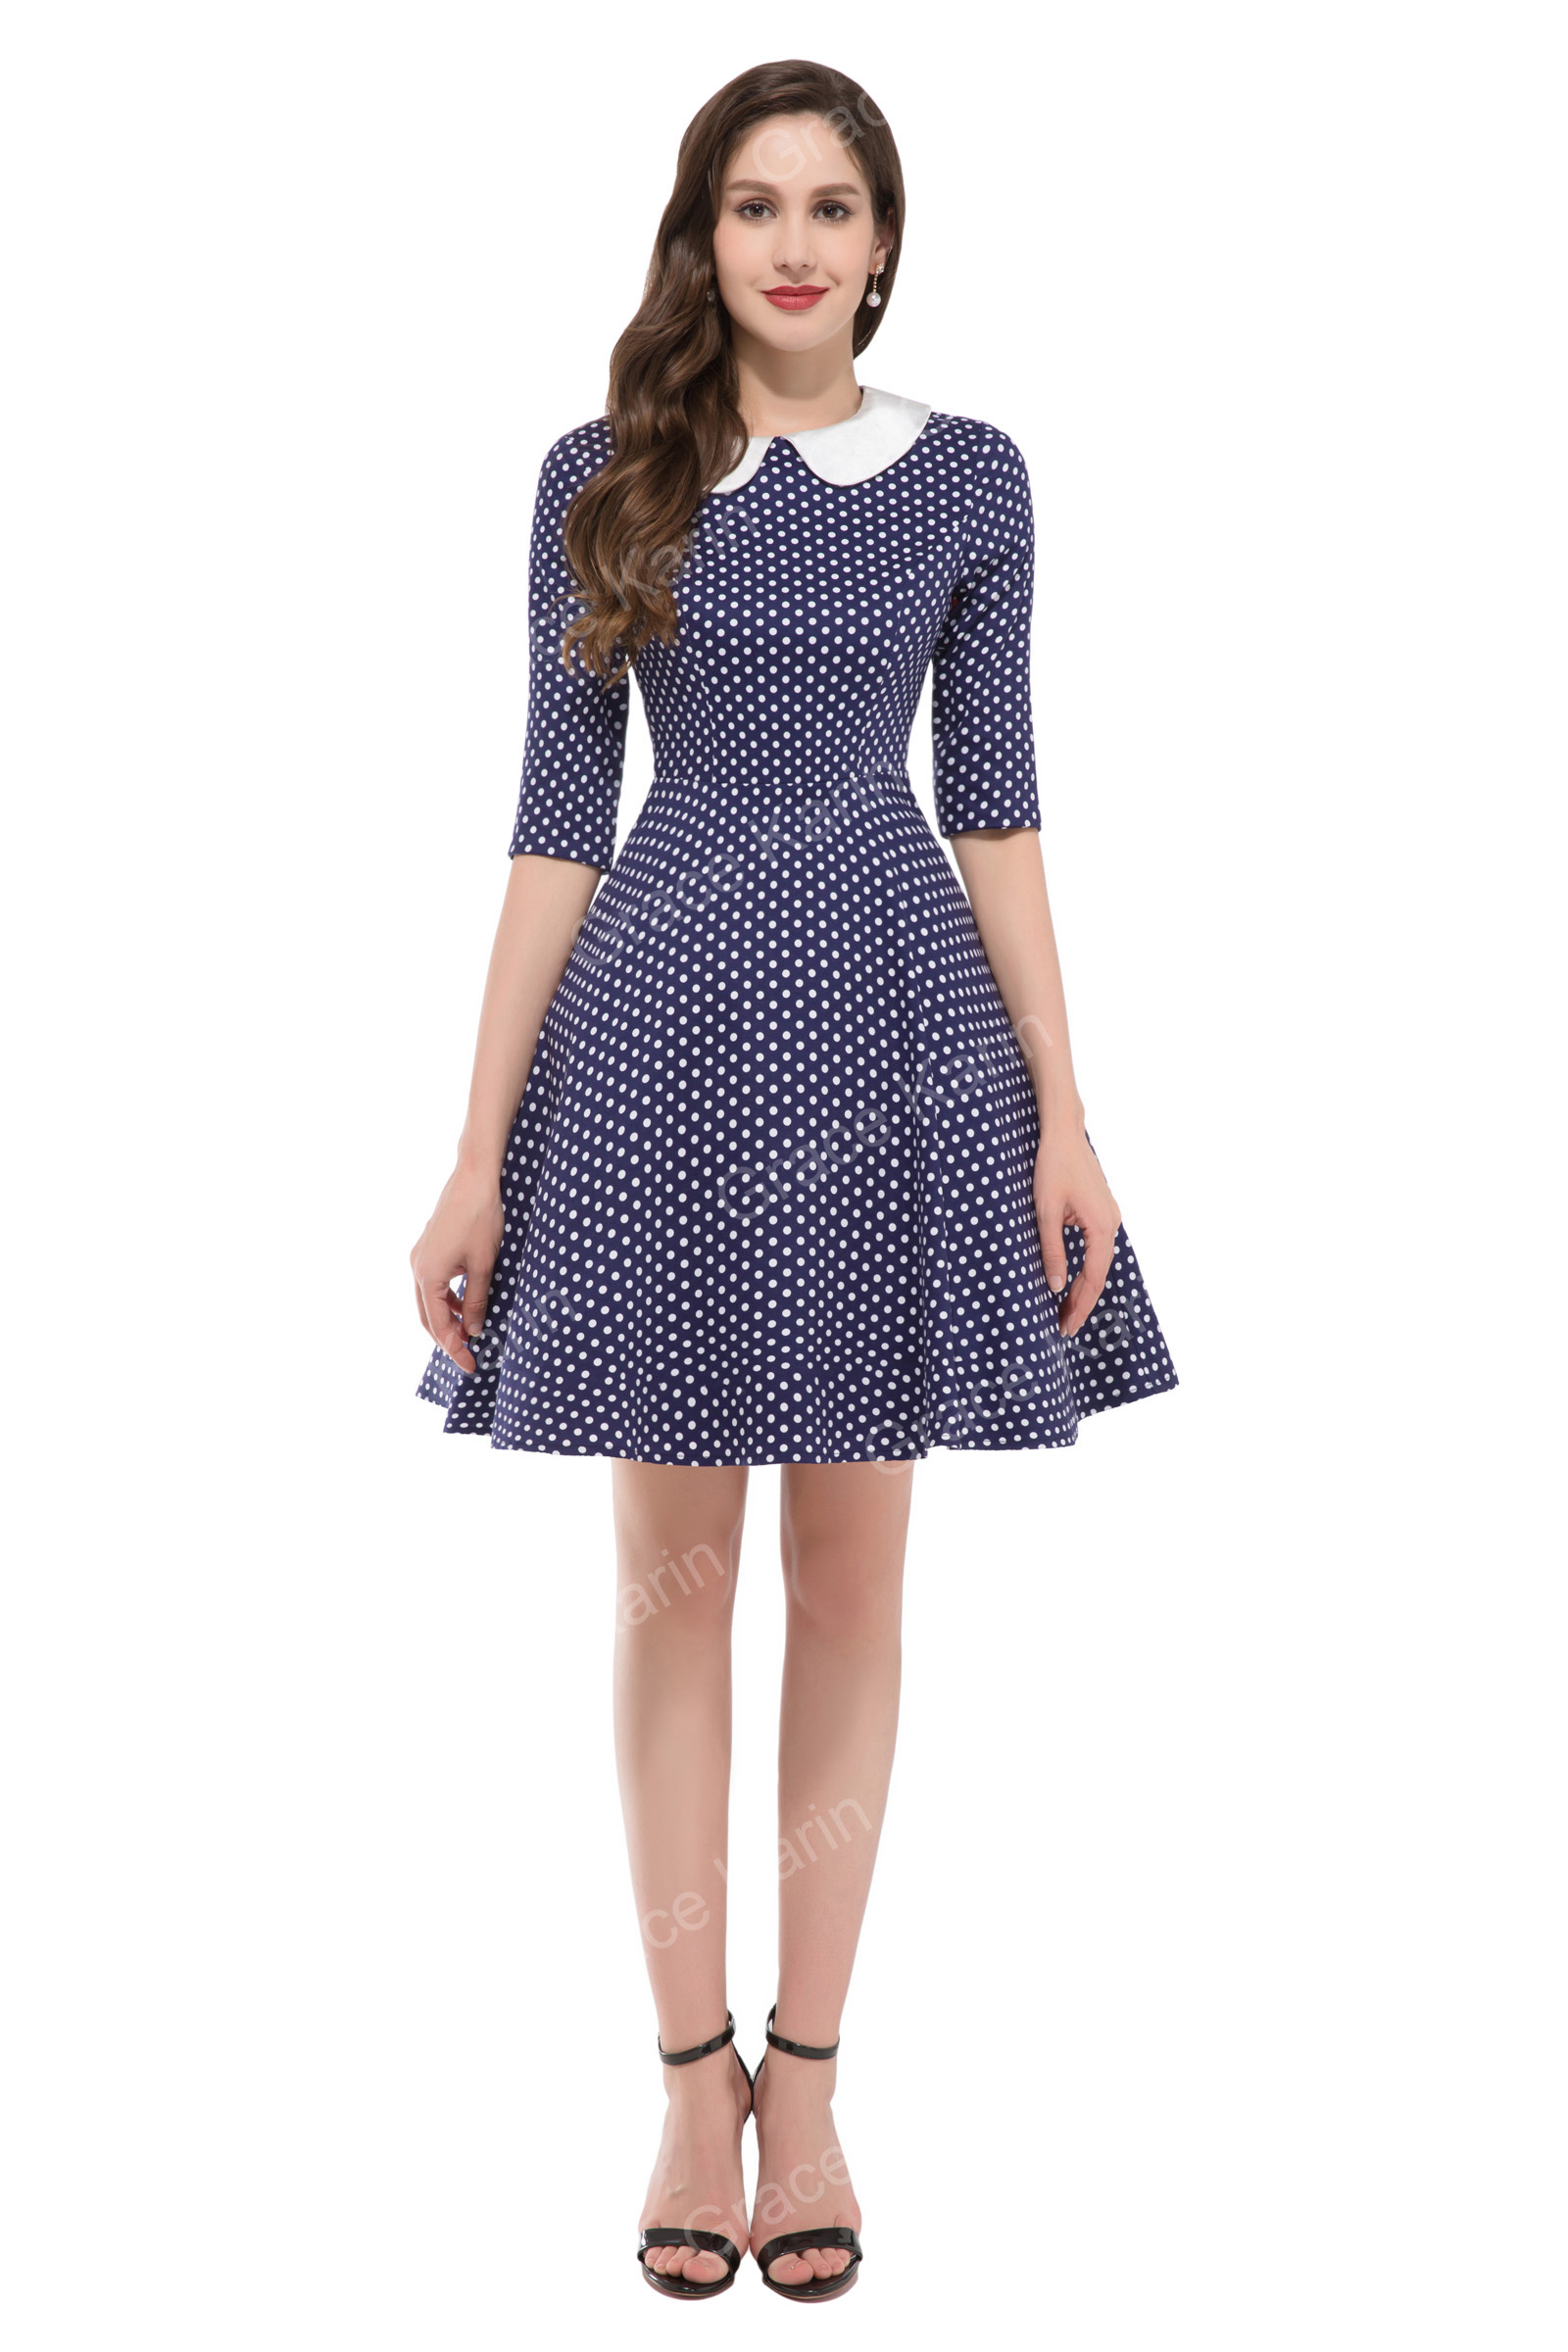 Women 50s 60s Vintage Swing Pinup Retro Housewife Party Homecoming ...